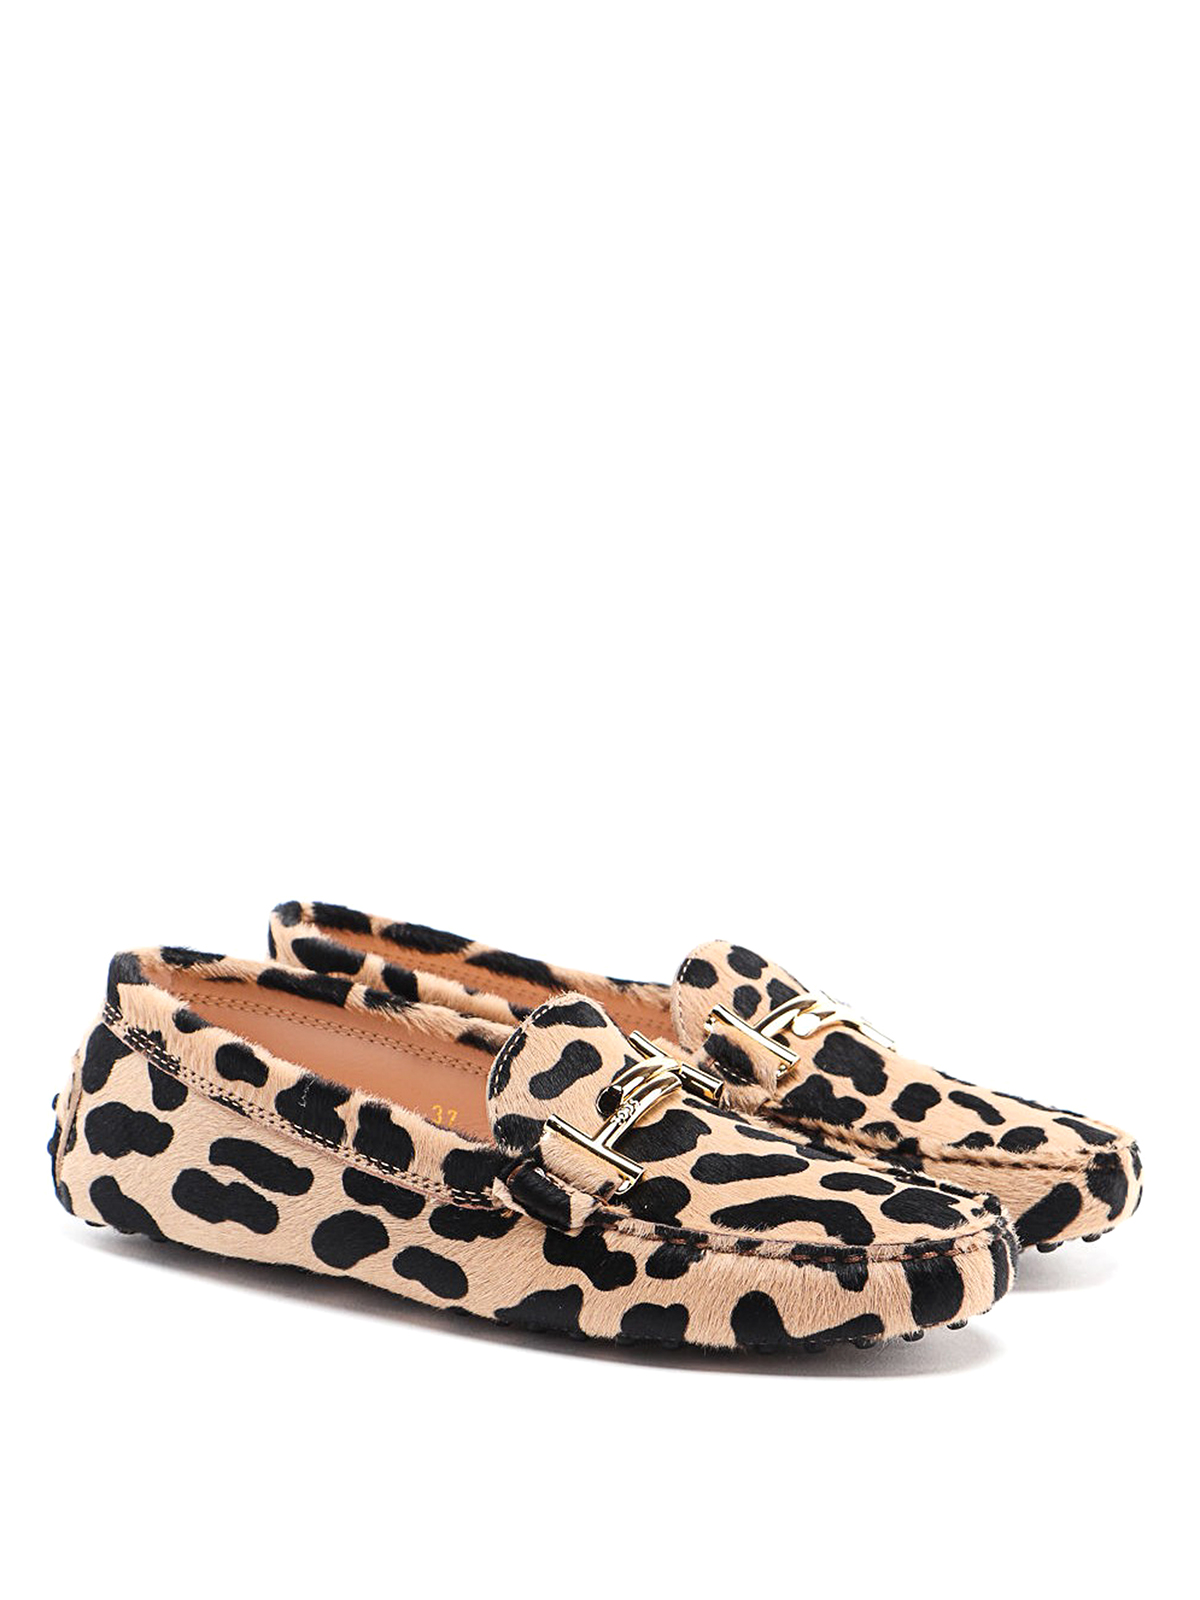 tod's leopard print loafers